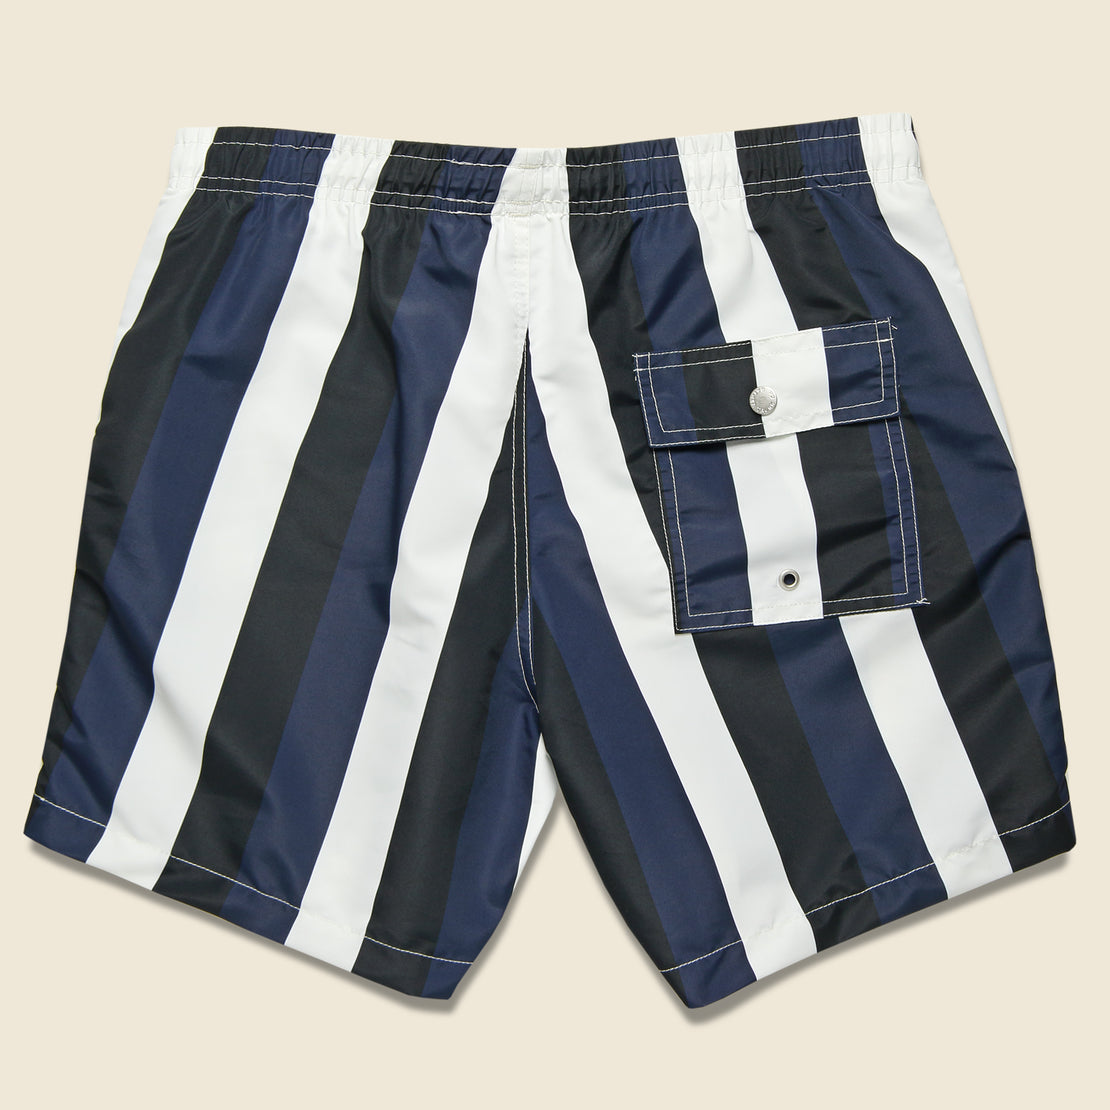 Striped Swim Trunk - Blue/Black